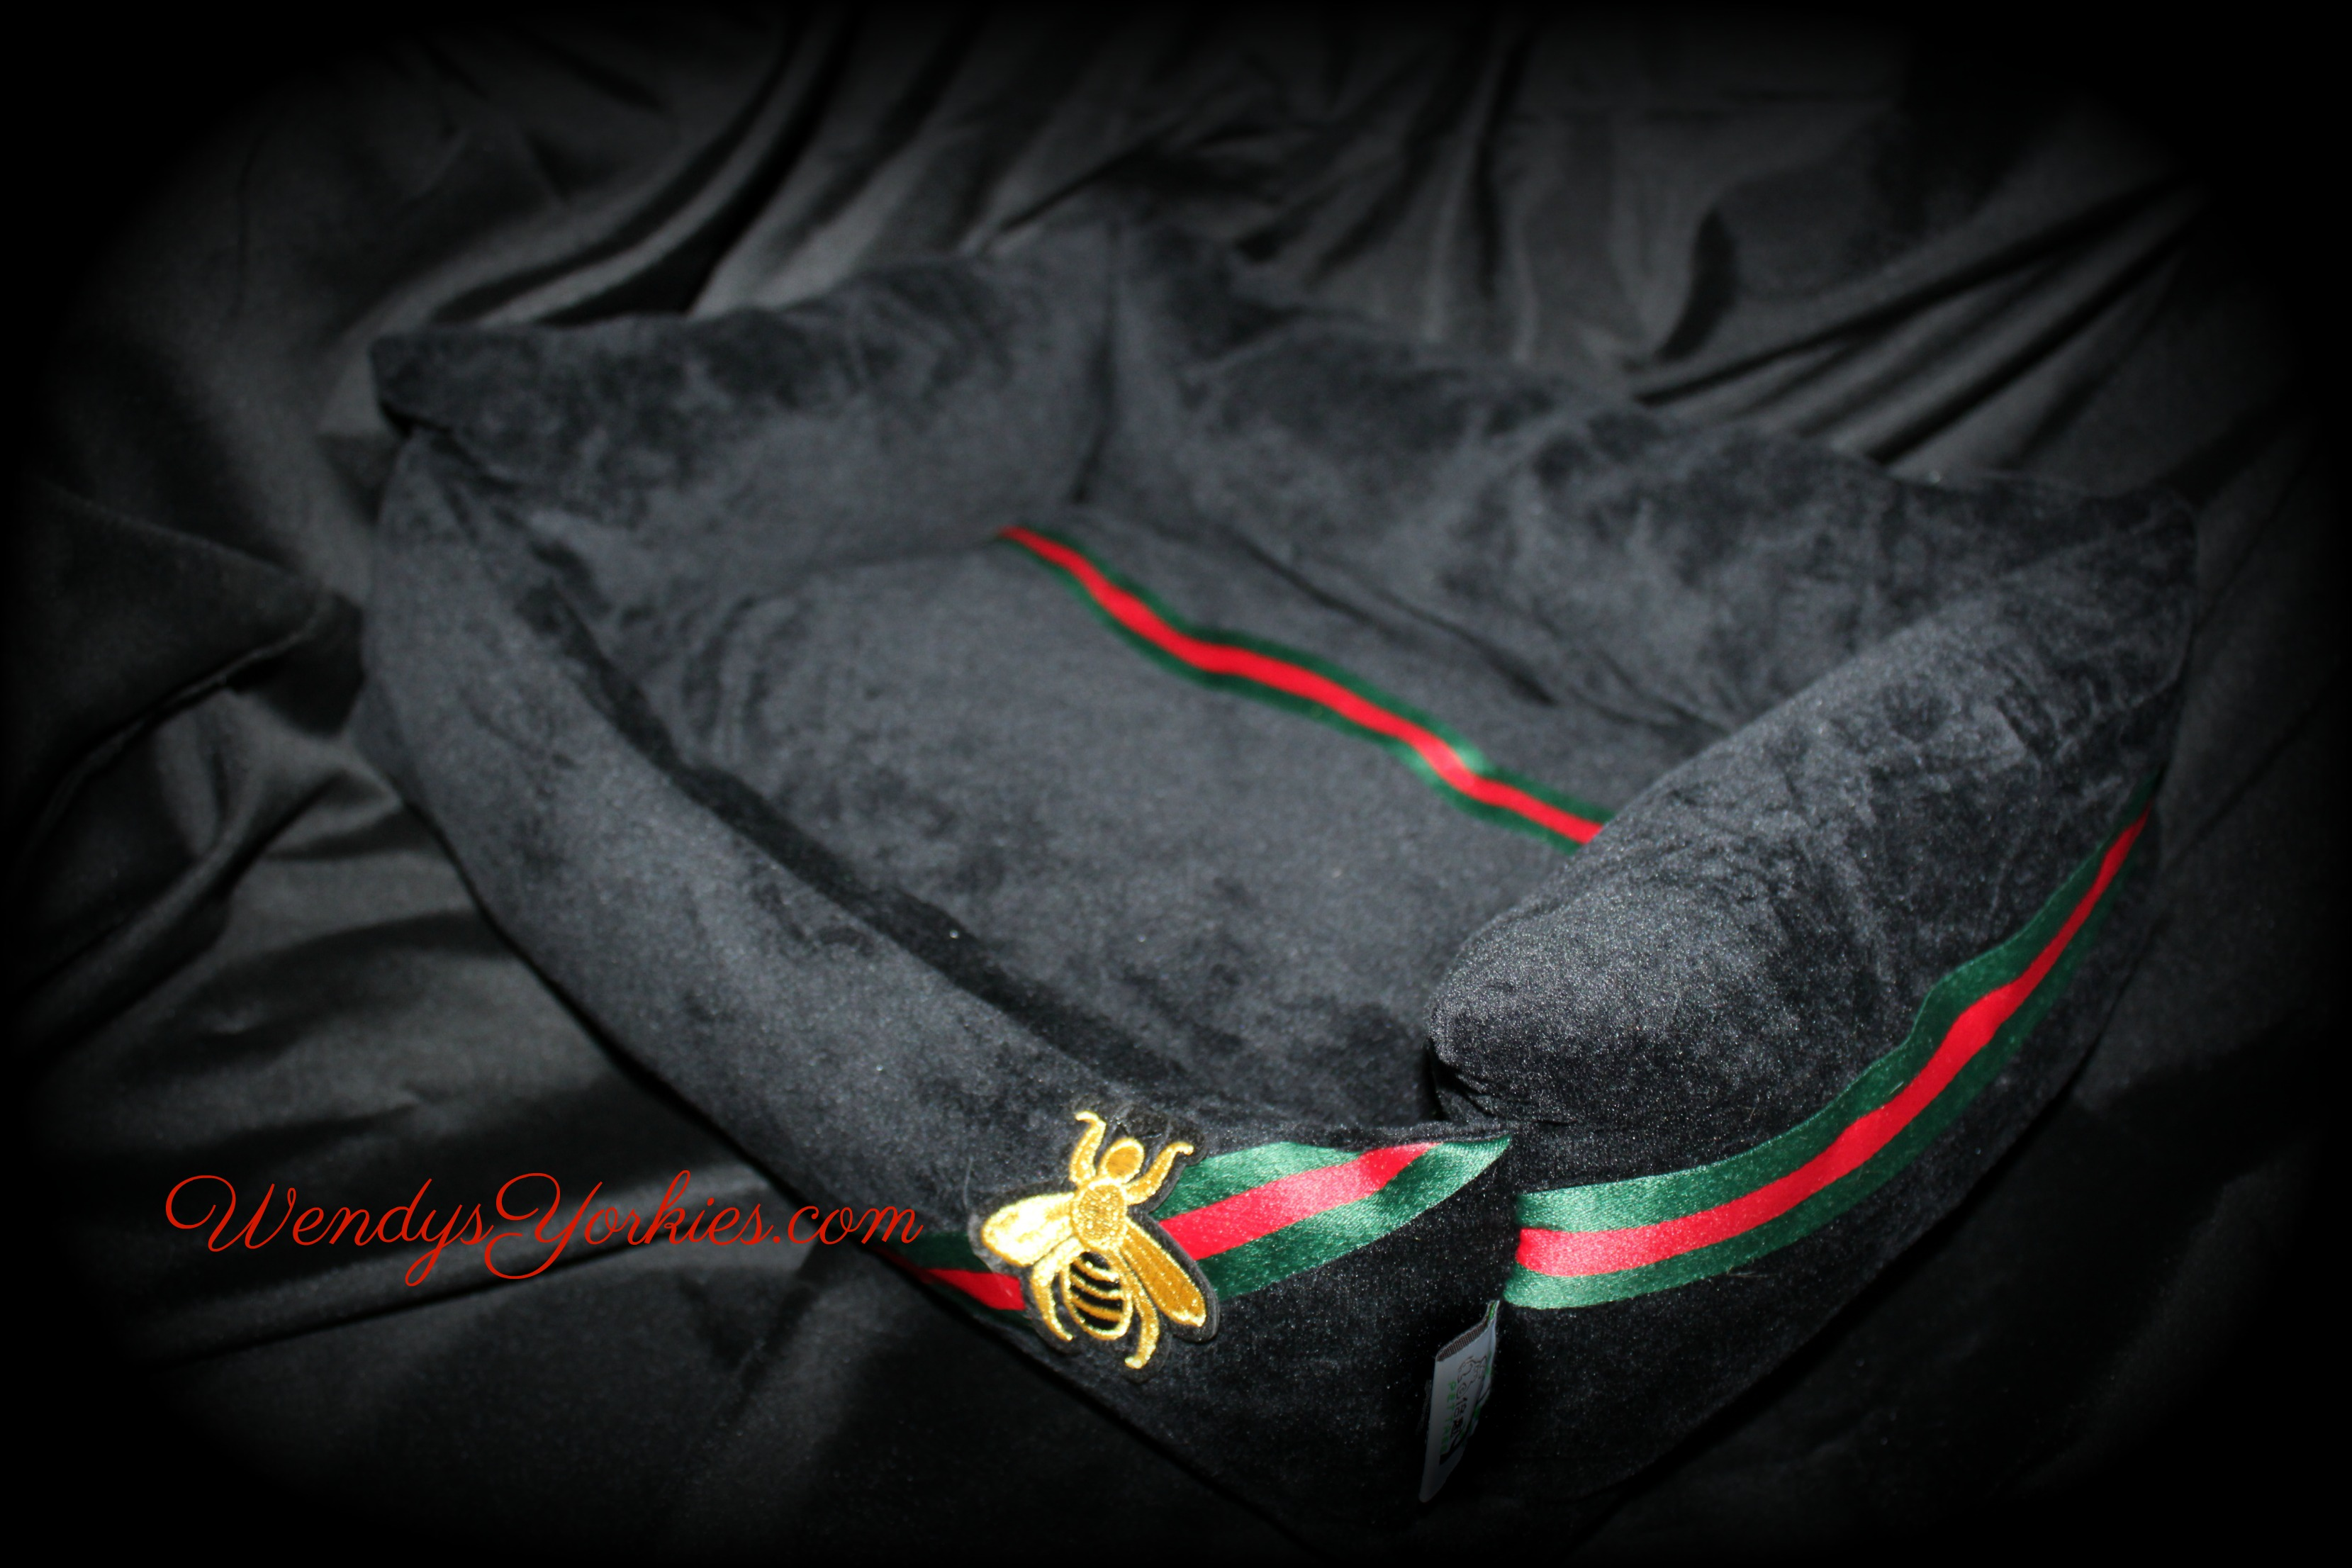 Black Designer inspired dog bed, WendysYorkies.com